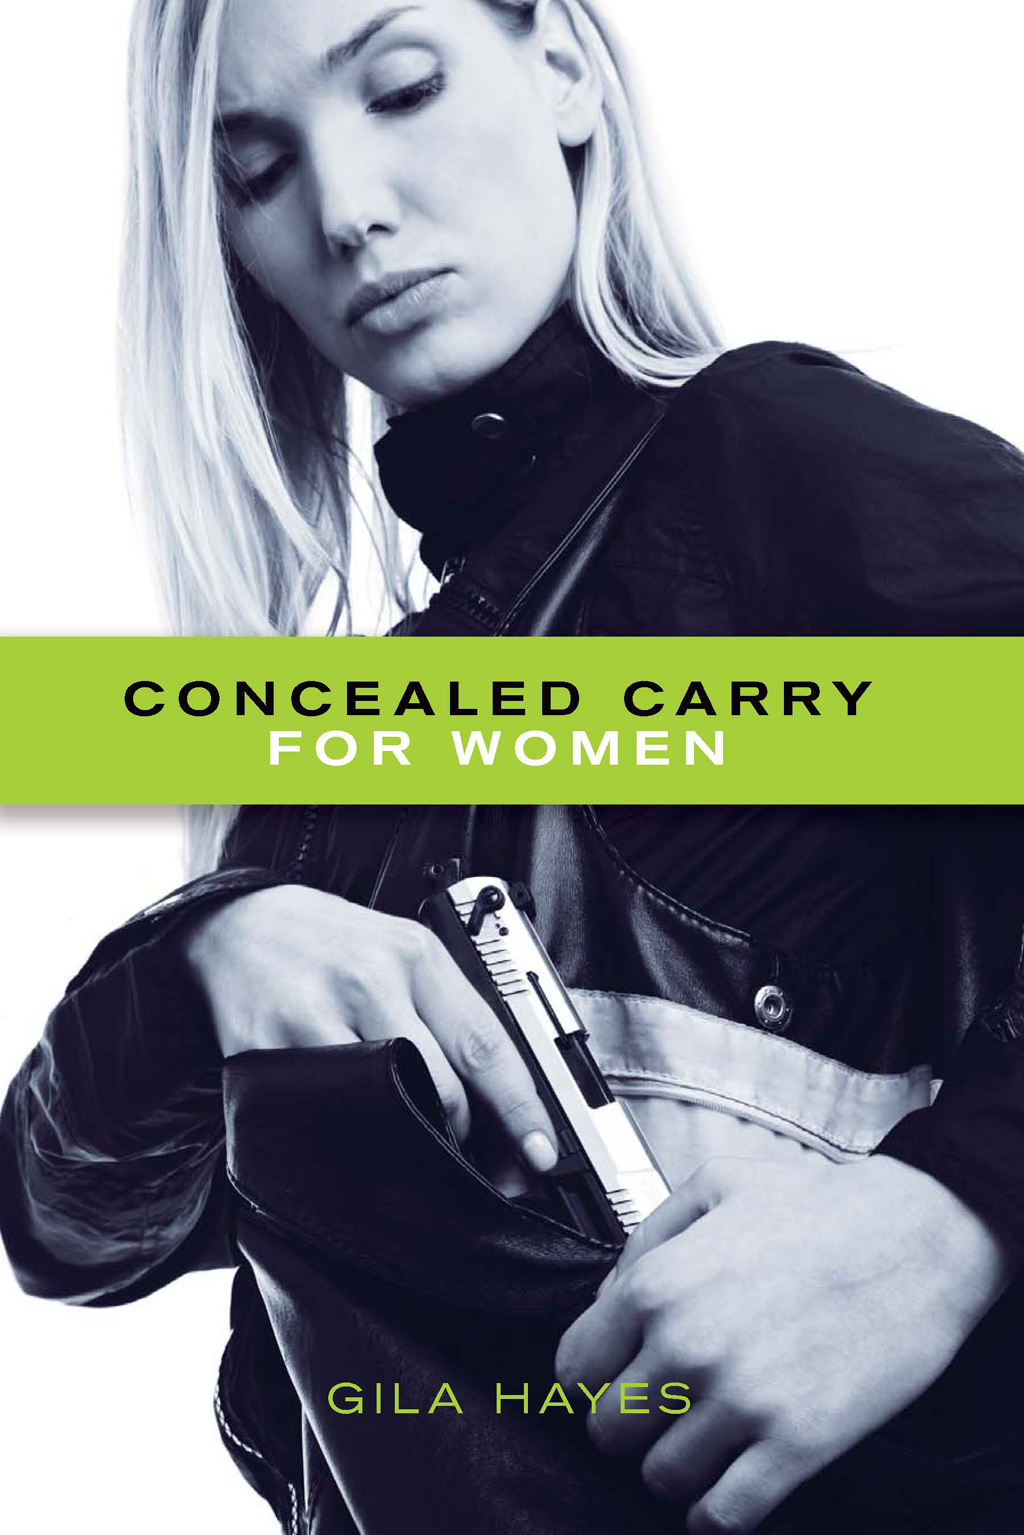 Concealed Carry for Women